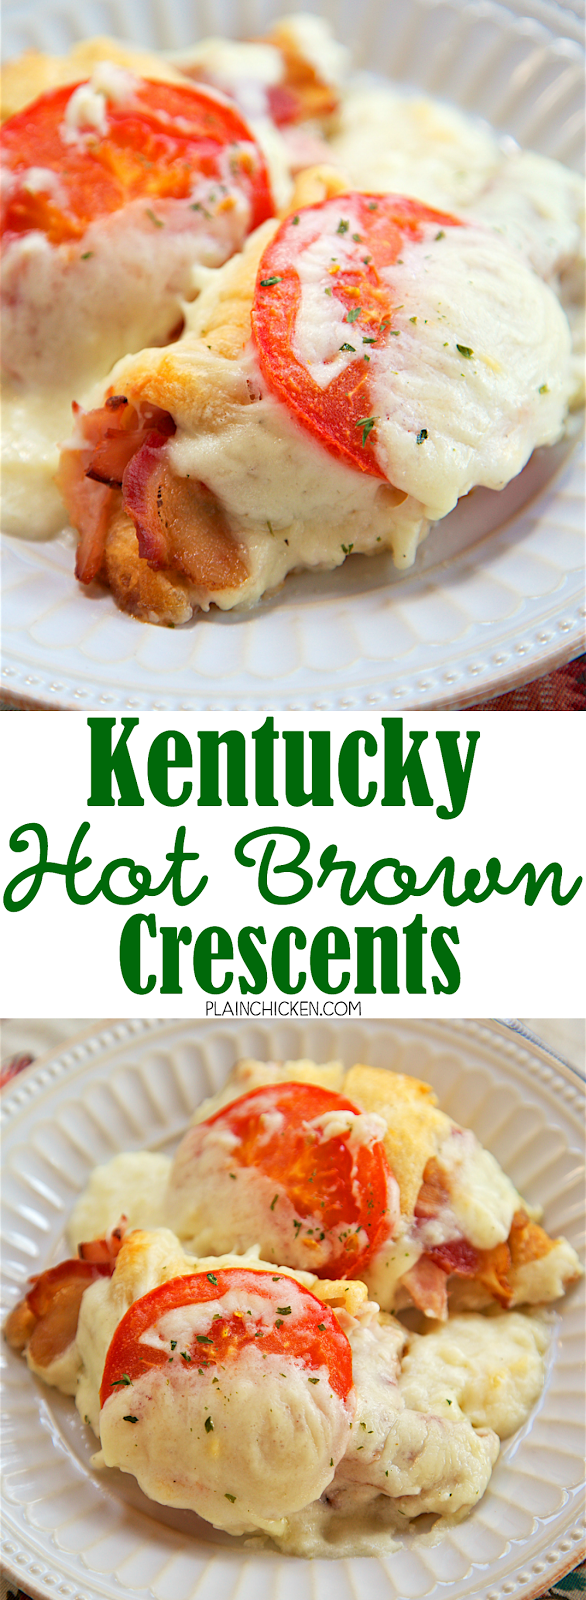 Kentucky Hot Brown Crescents - Turkey and bacon wrapped in crescent rolls and topped with a tomato slice and a homemade swiss cheese sauce and baked. SOOO good! Perfect for you Kentucky Derby party or a delicious lunch or dinner!